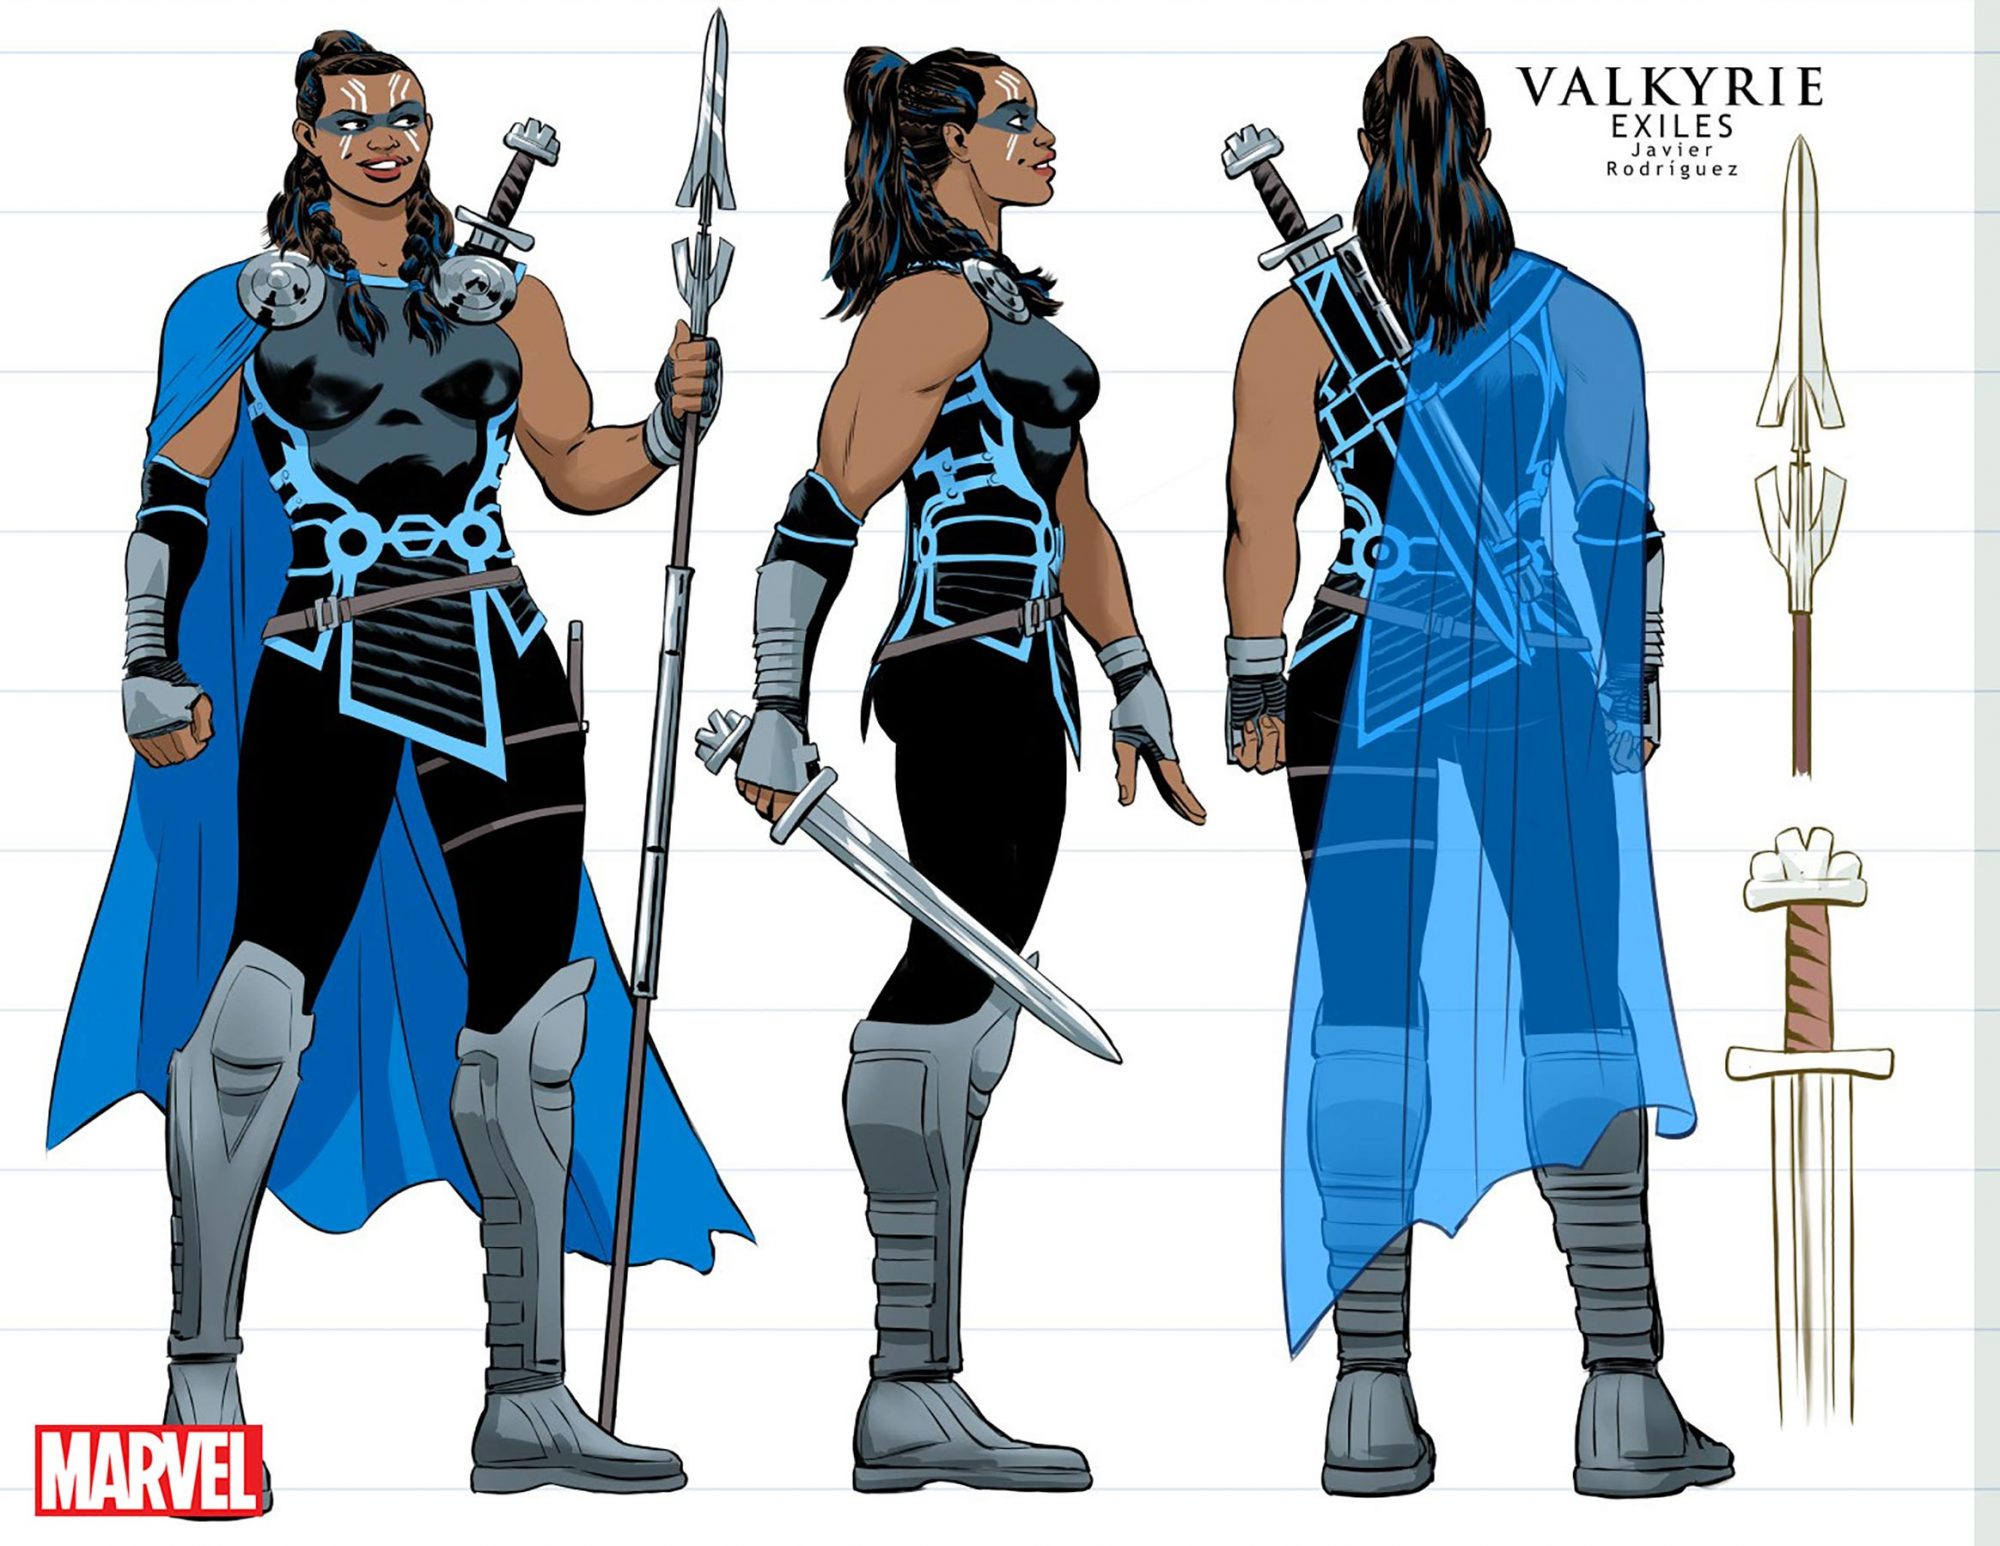 Valkyrie Comic Book CR: Marvel